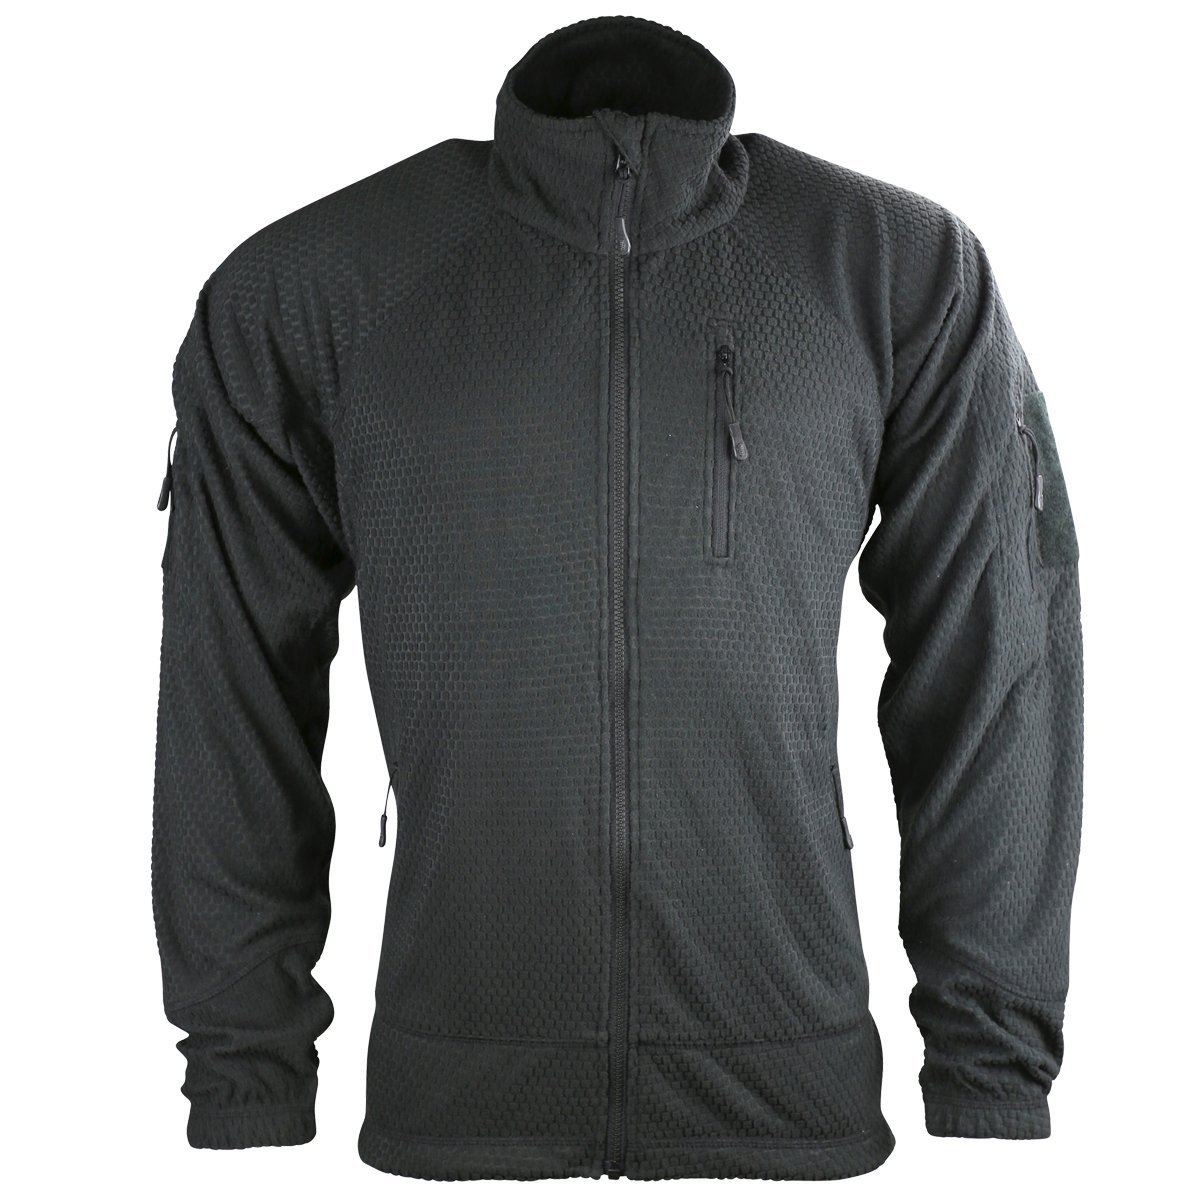 Shooting In Delta Colorado: KOMBAT DELTA TACTICAL GRID FLEECE JACKET WARM RECON ARMY